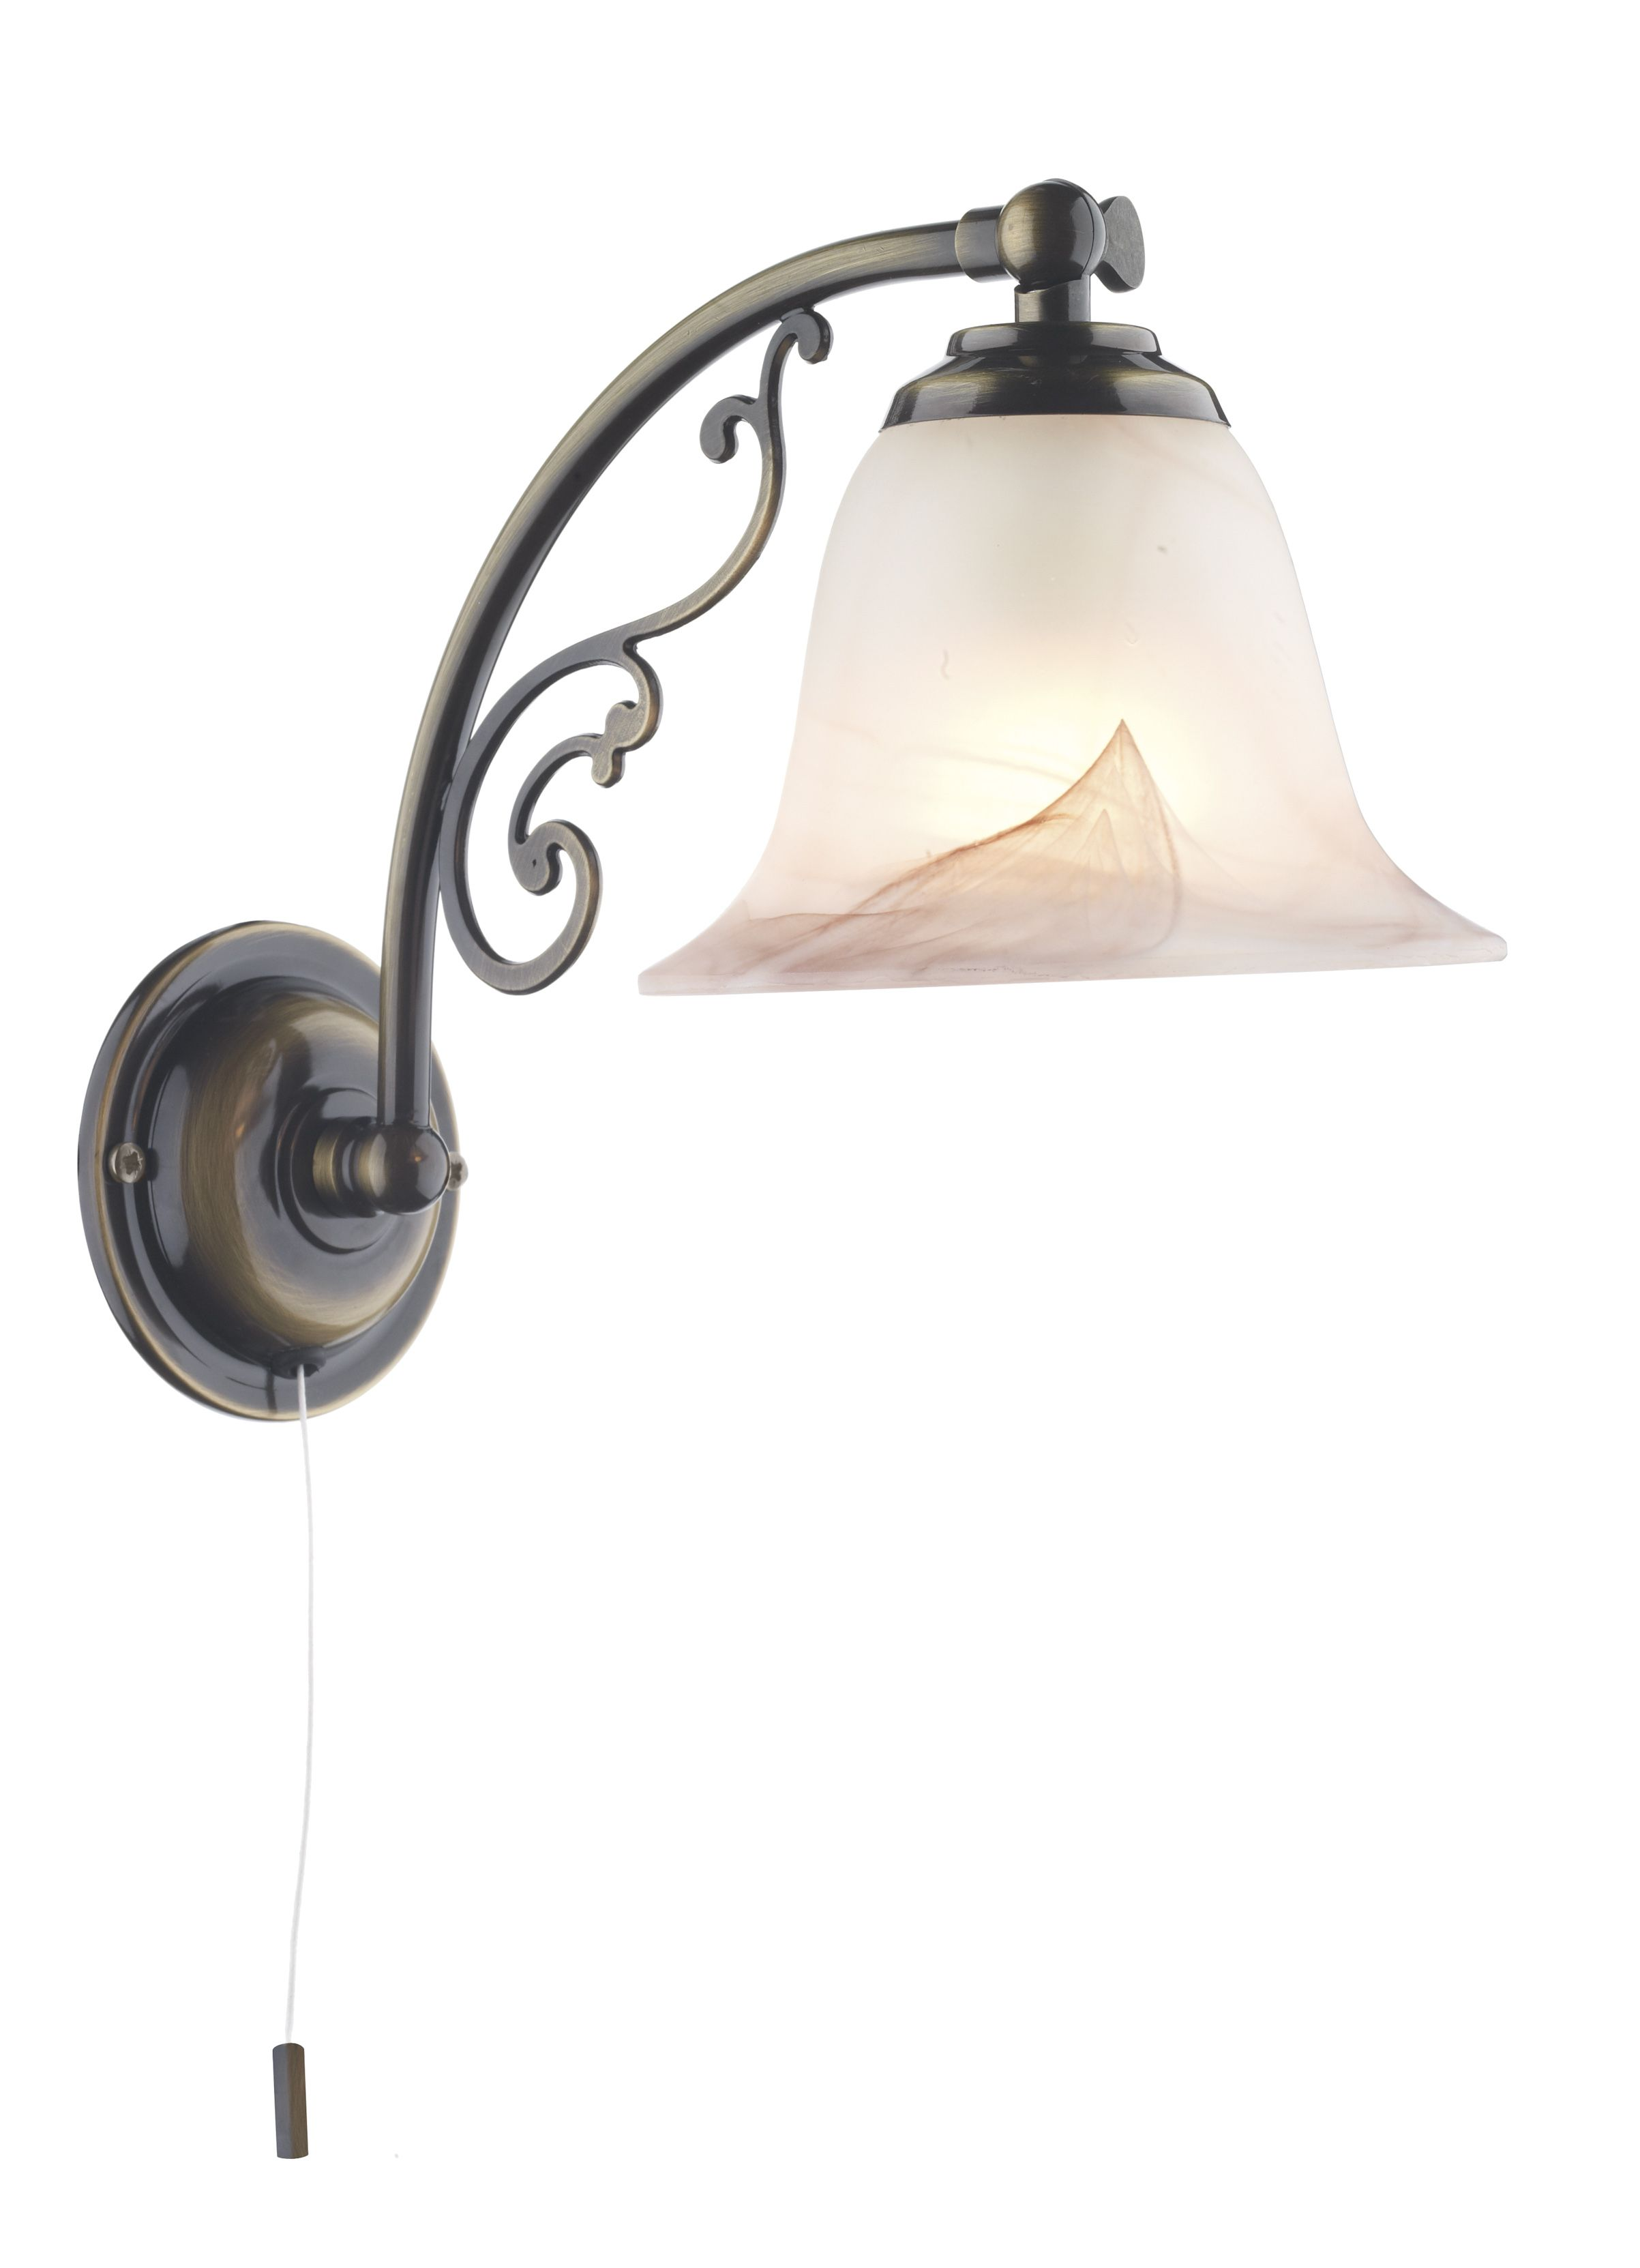 Target Bedroom Lamps Wall Lamps With Cord Target With Decorative Up Down Wall Lamp With